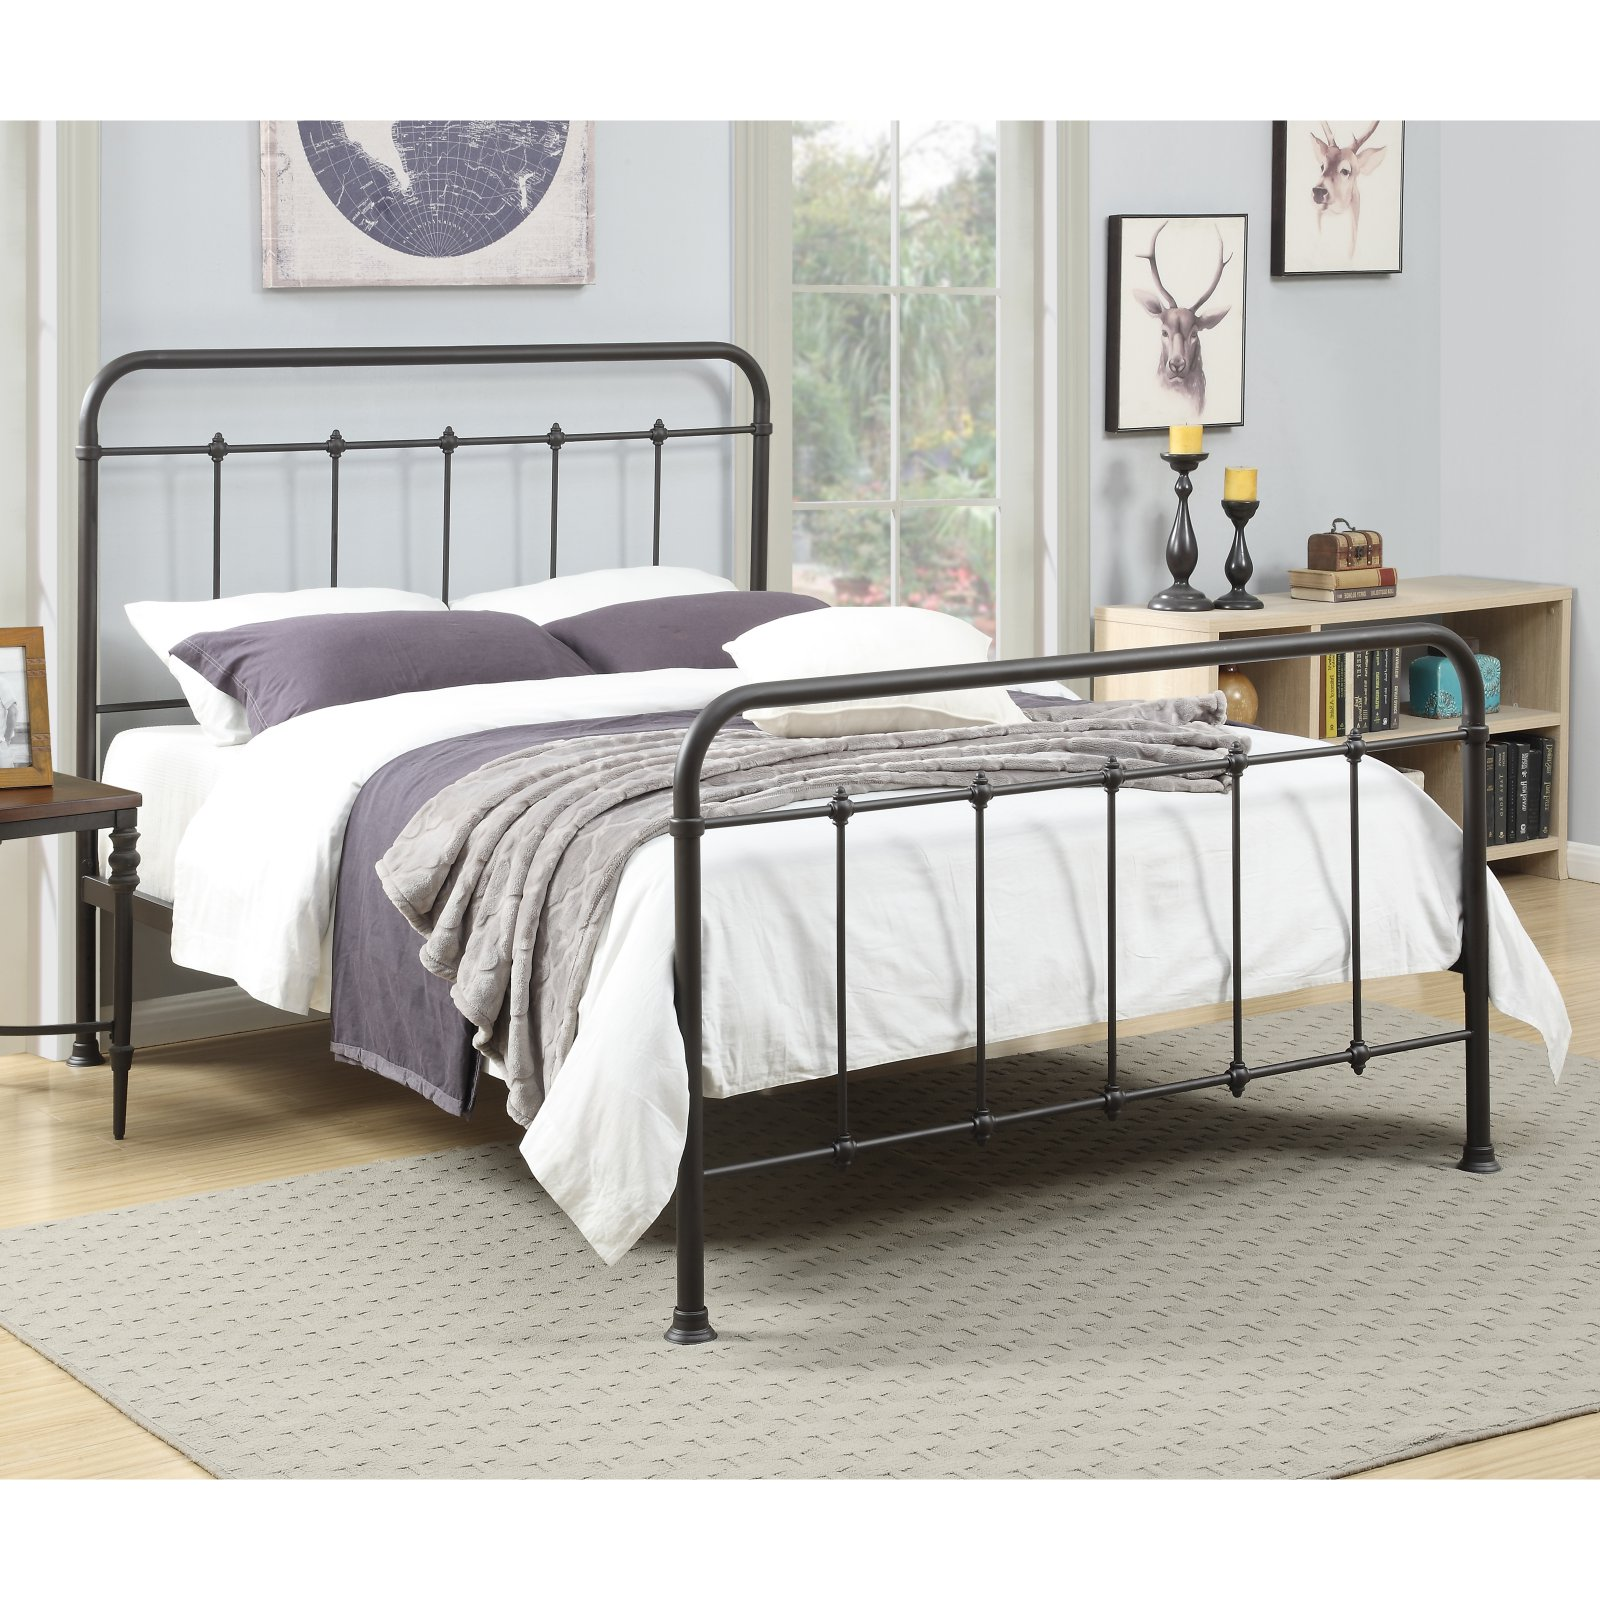 Home Meridian Westford Standard Queen Bed